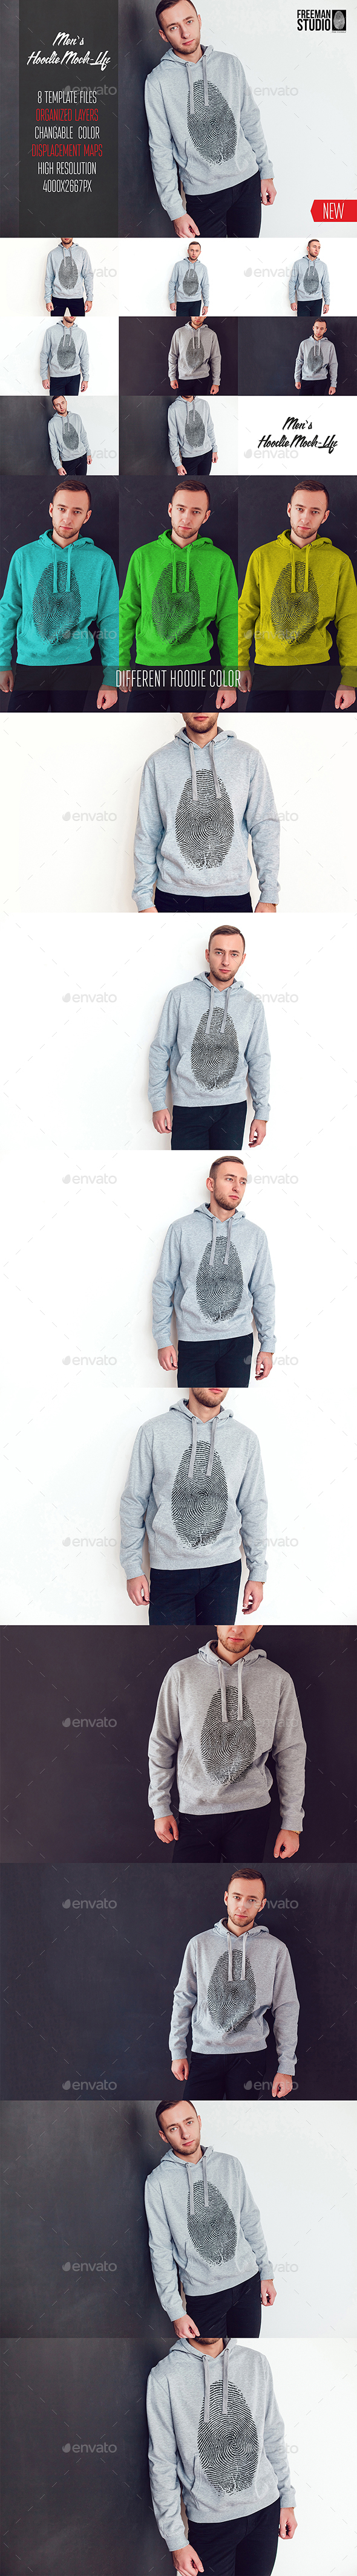 Men's Hoodie Mock-Up - Graphics